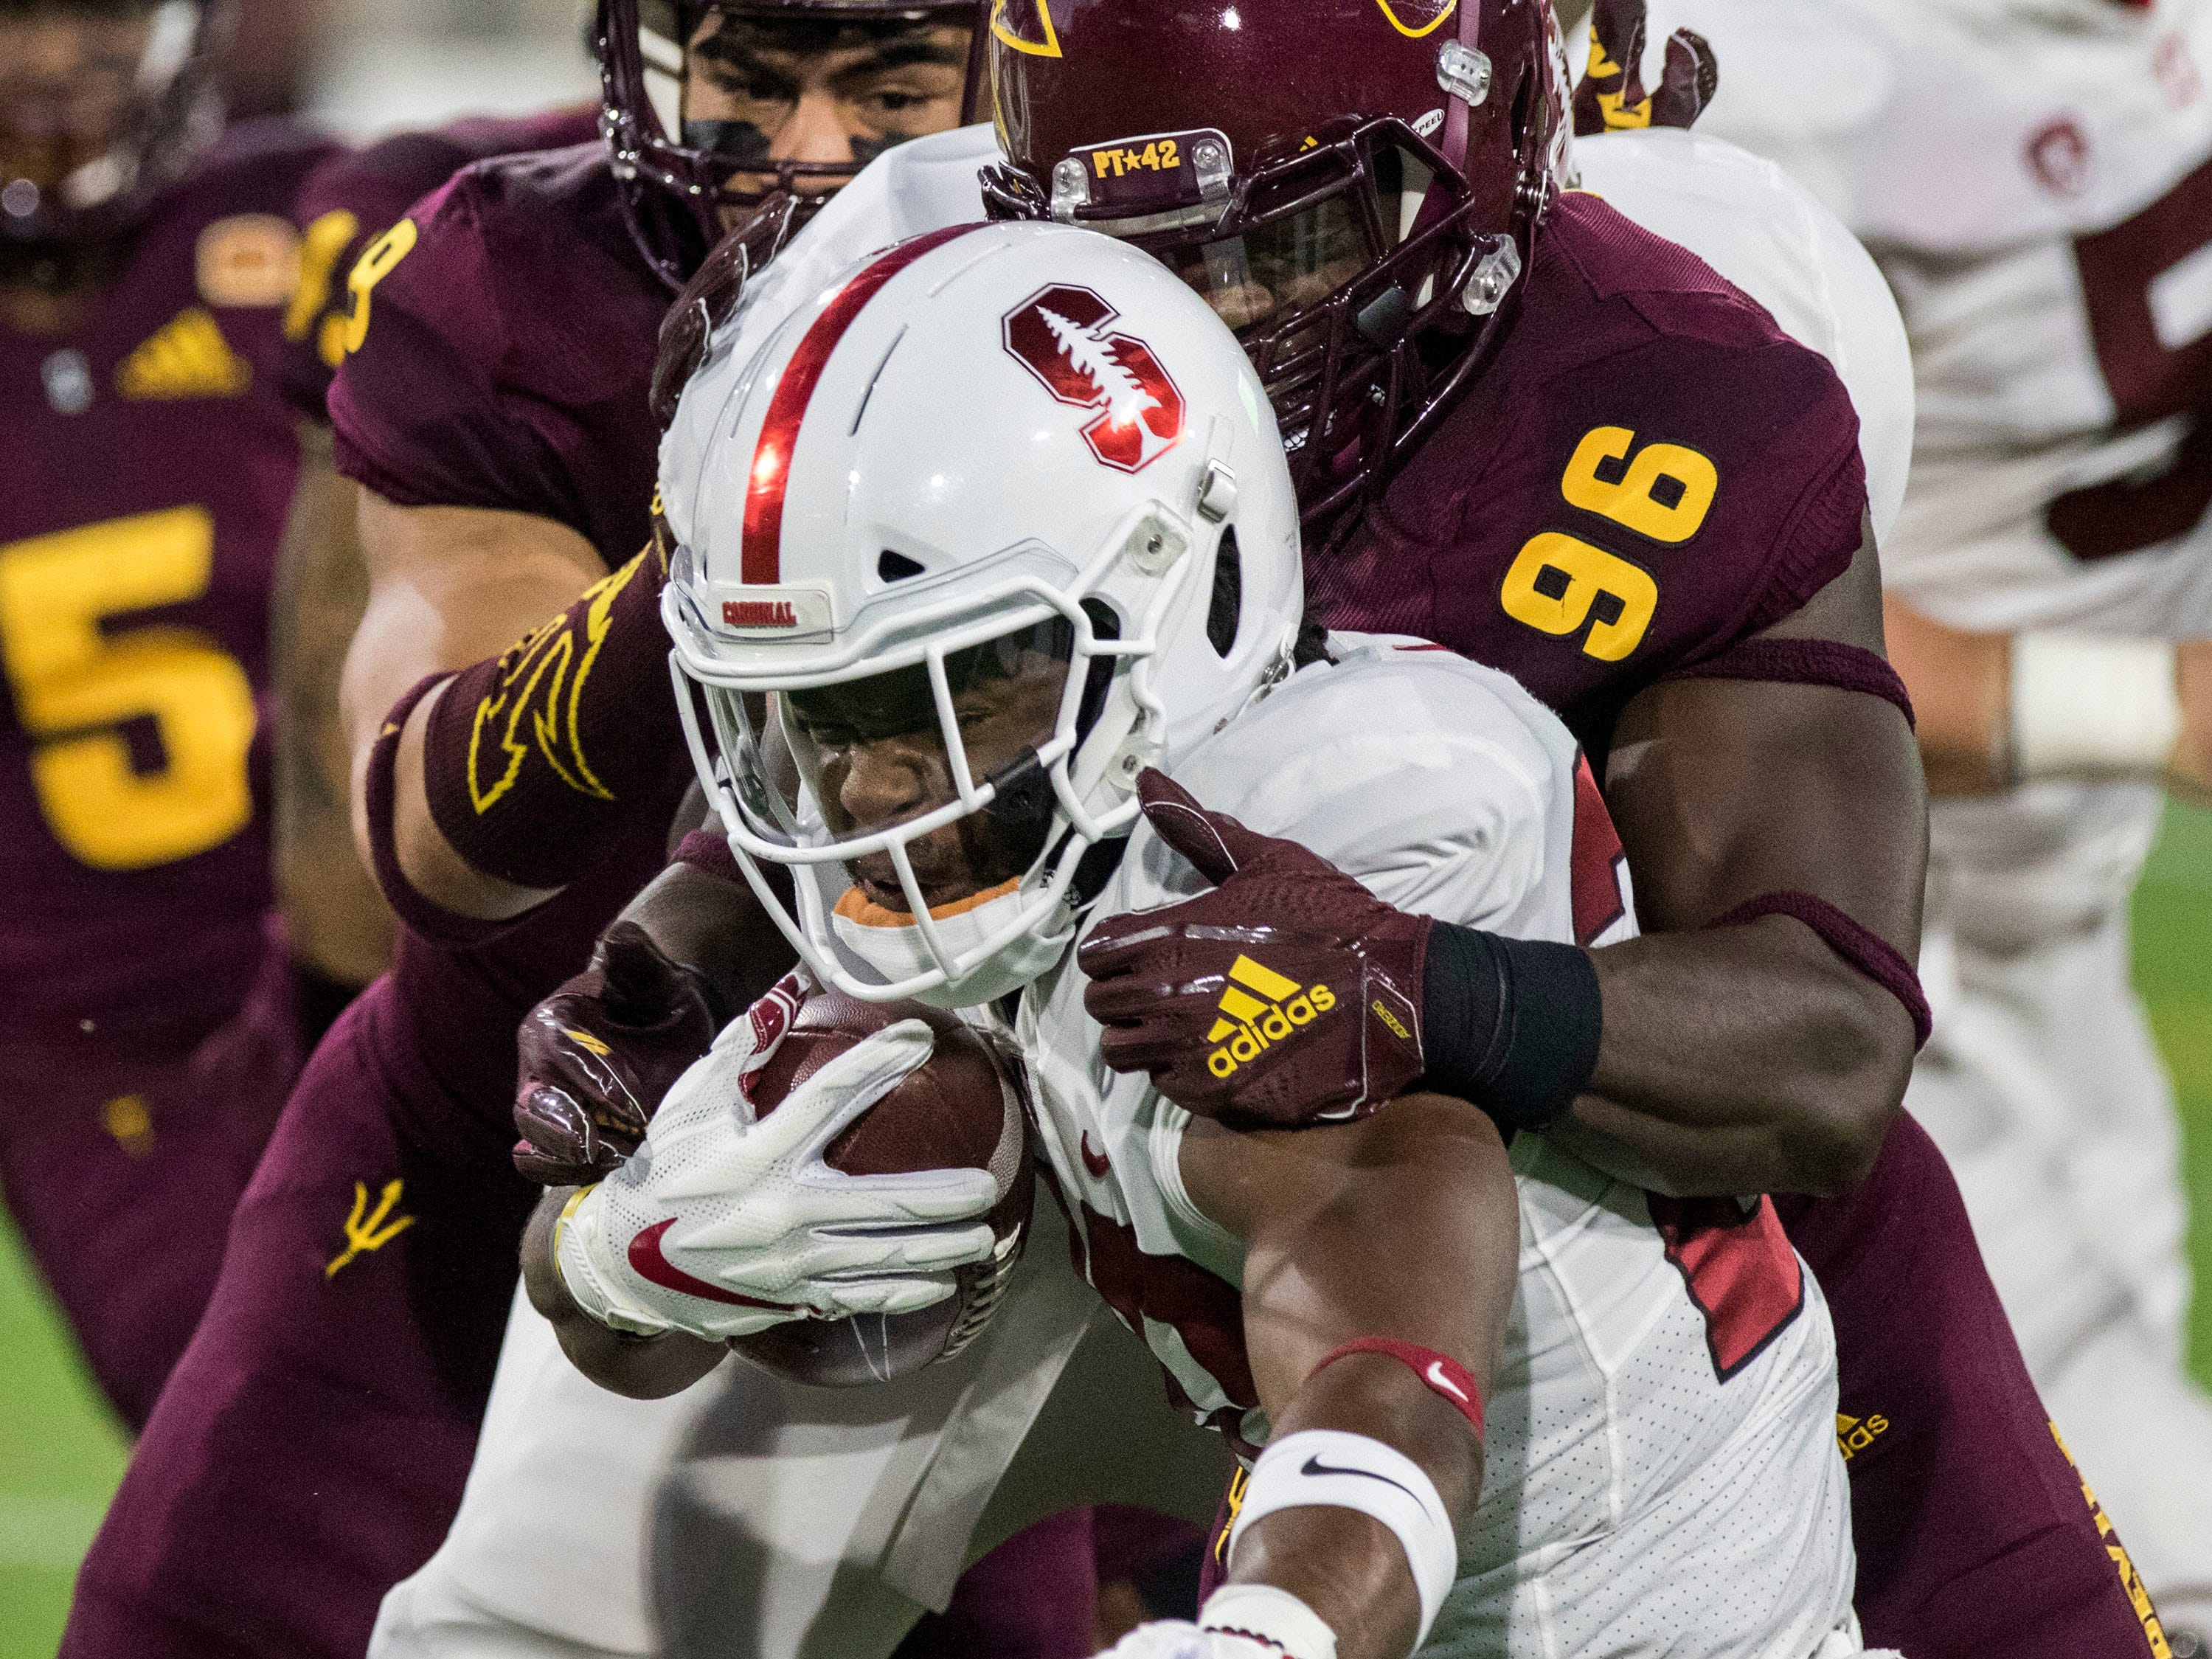 Stanford's Bryce Love gets wrapped up by Arizona State's Jalen Bates during the first half of an NCAA college football game Thursday, Oct. 18, 2018, in Tempe, Ariz.